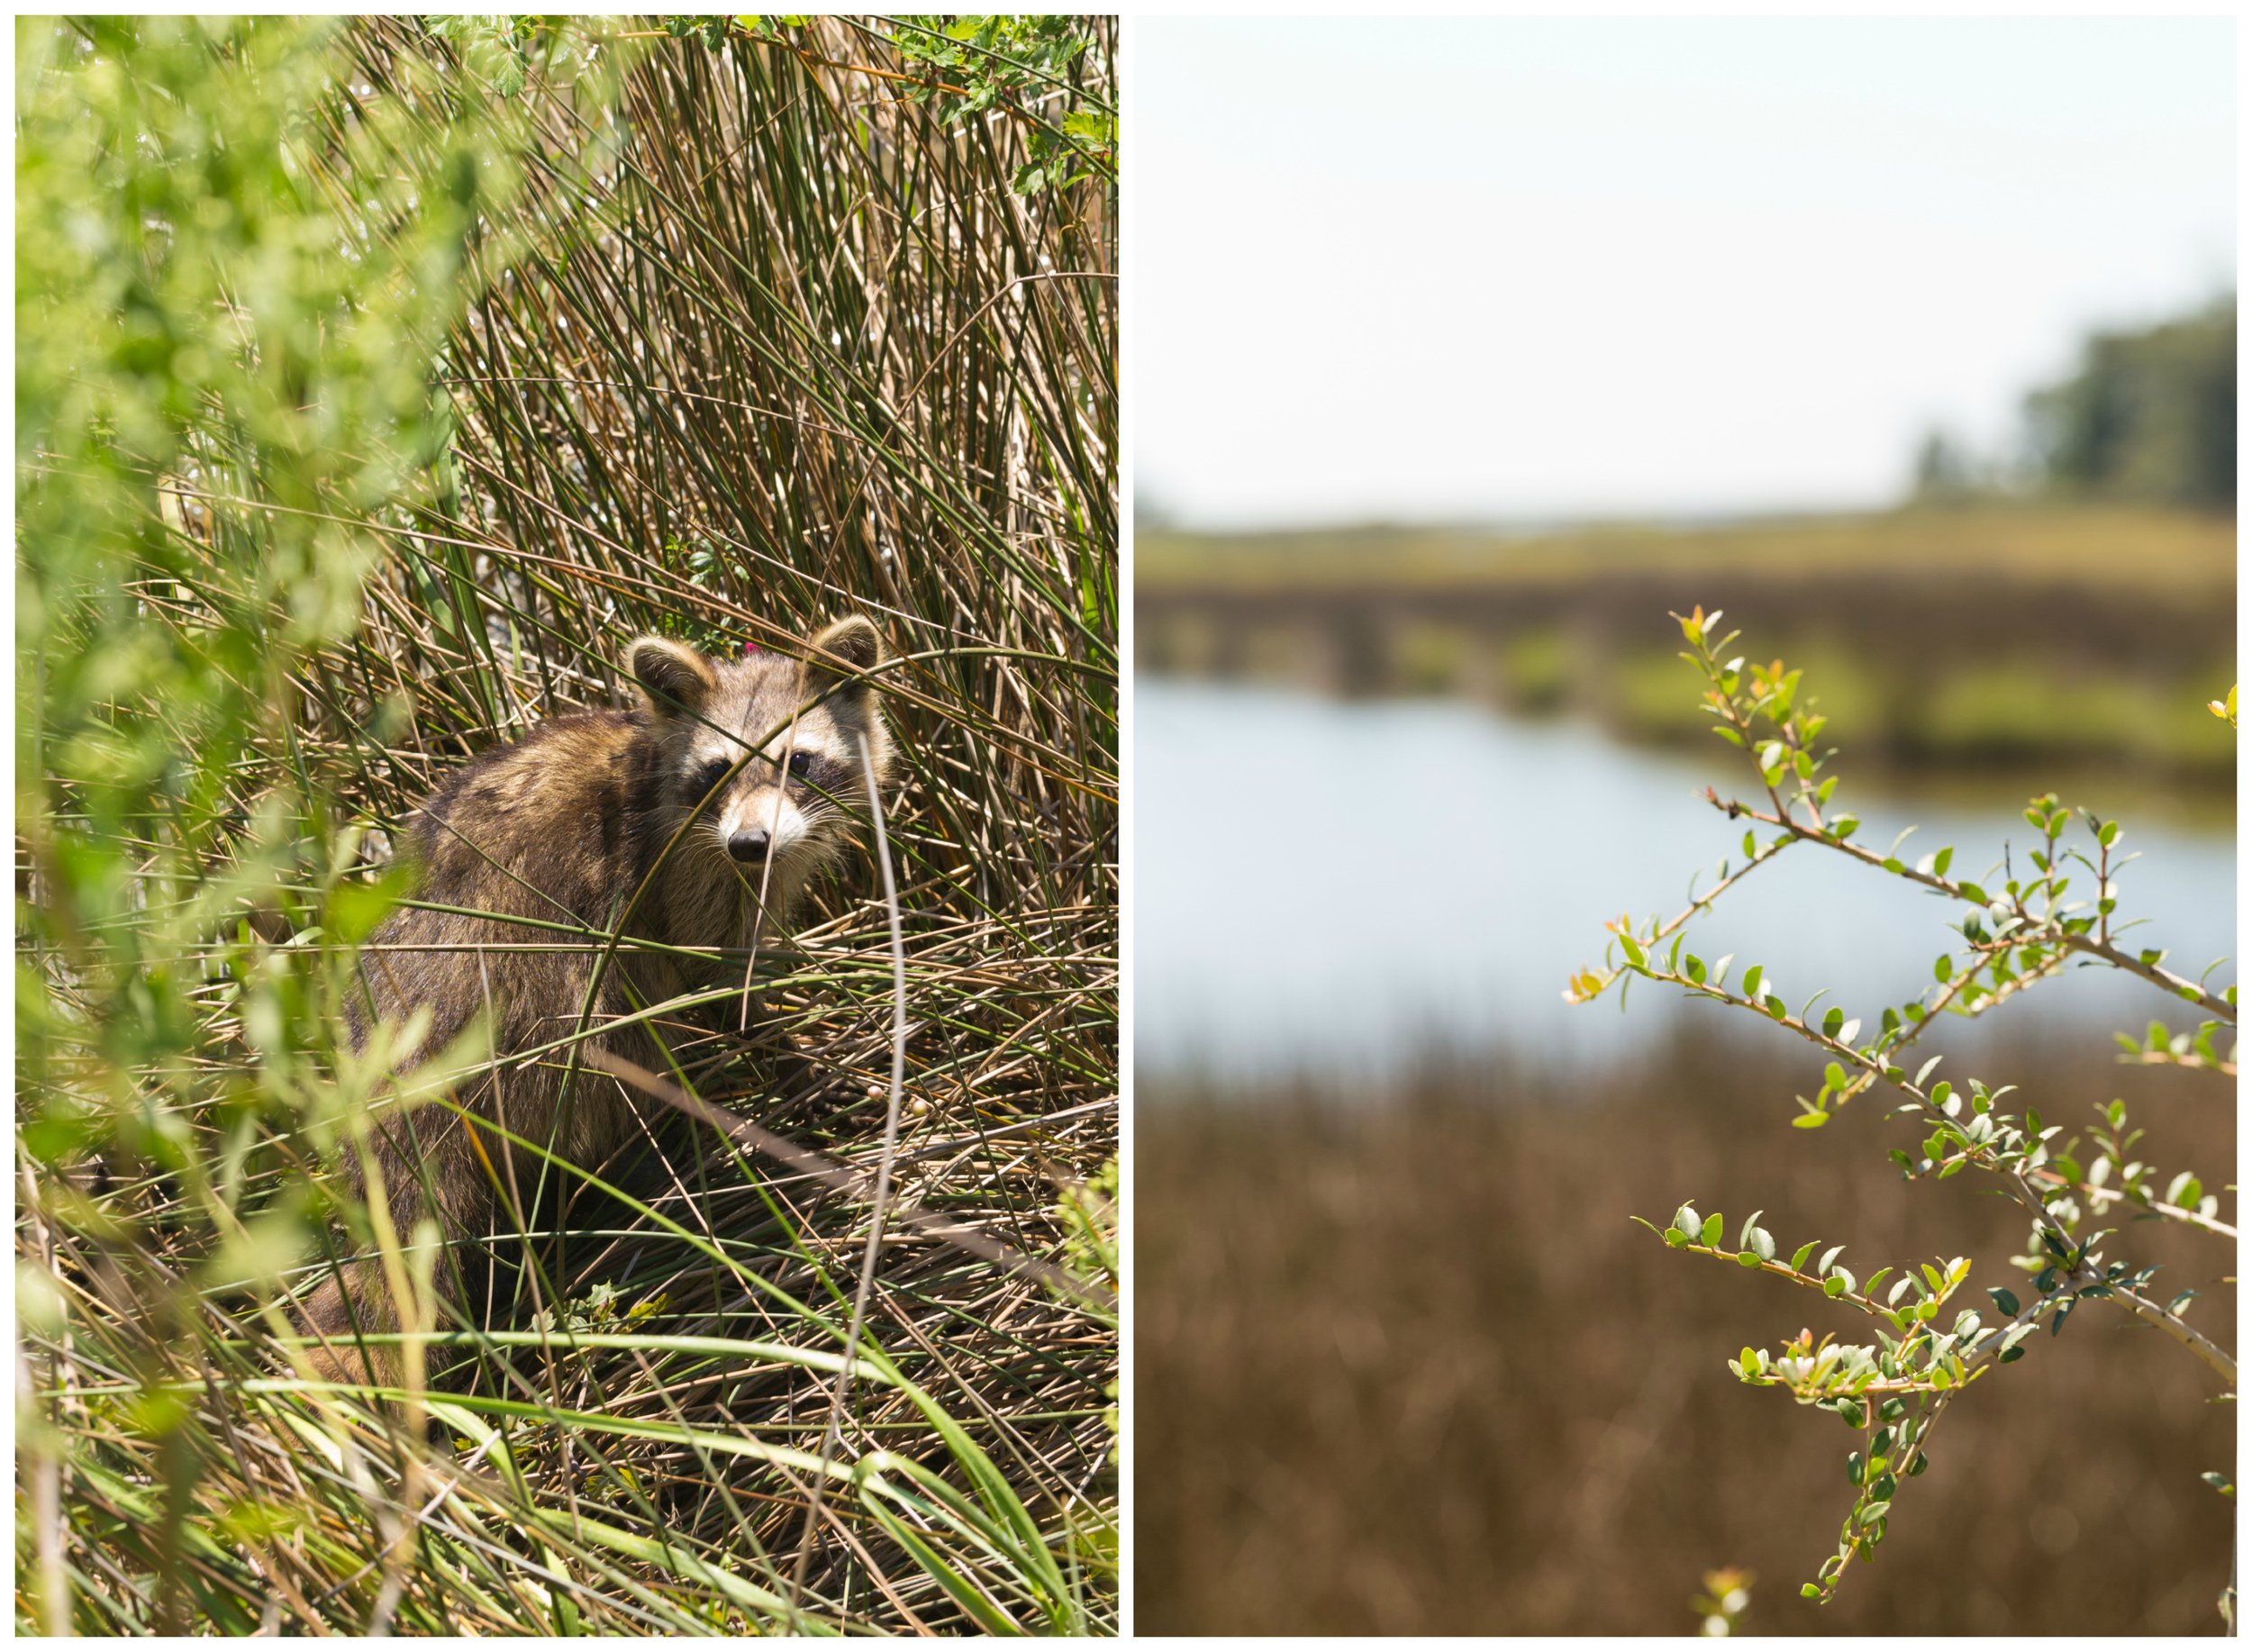 raccoon in nature in daytime